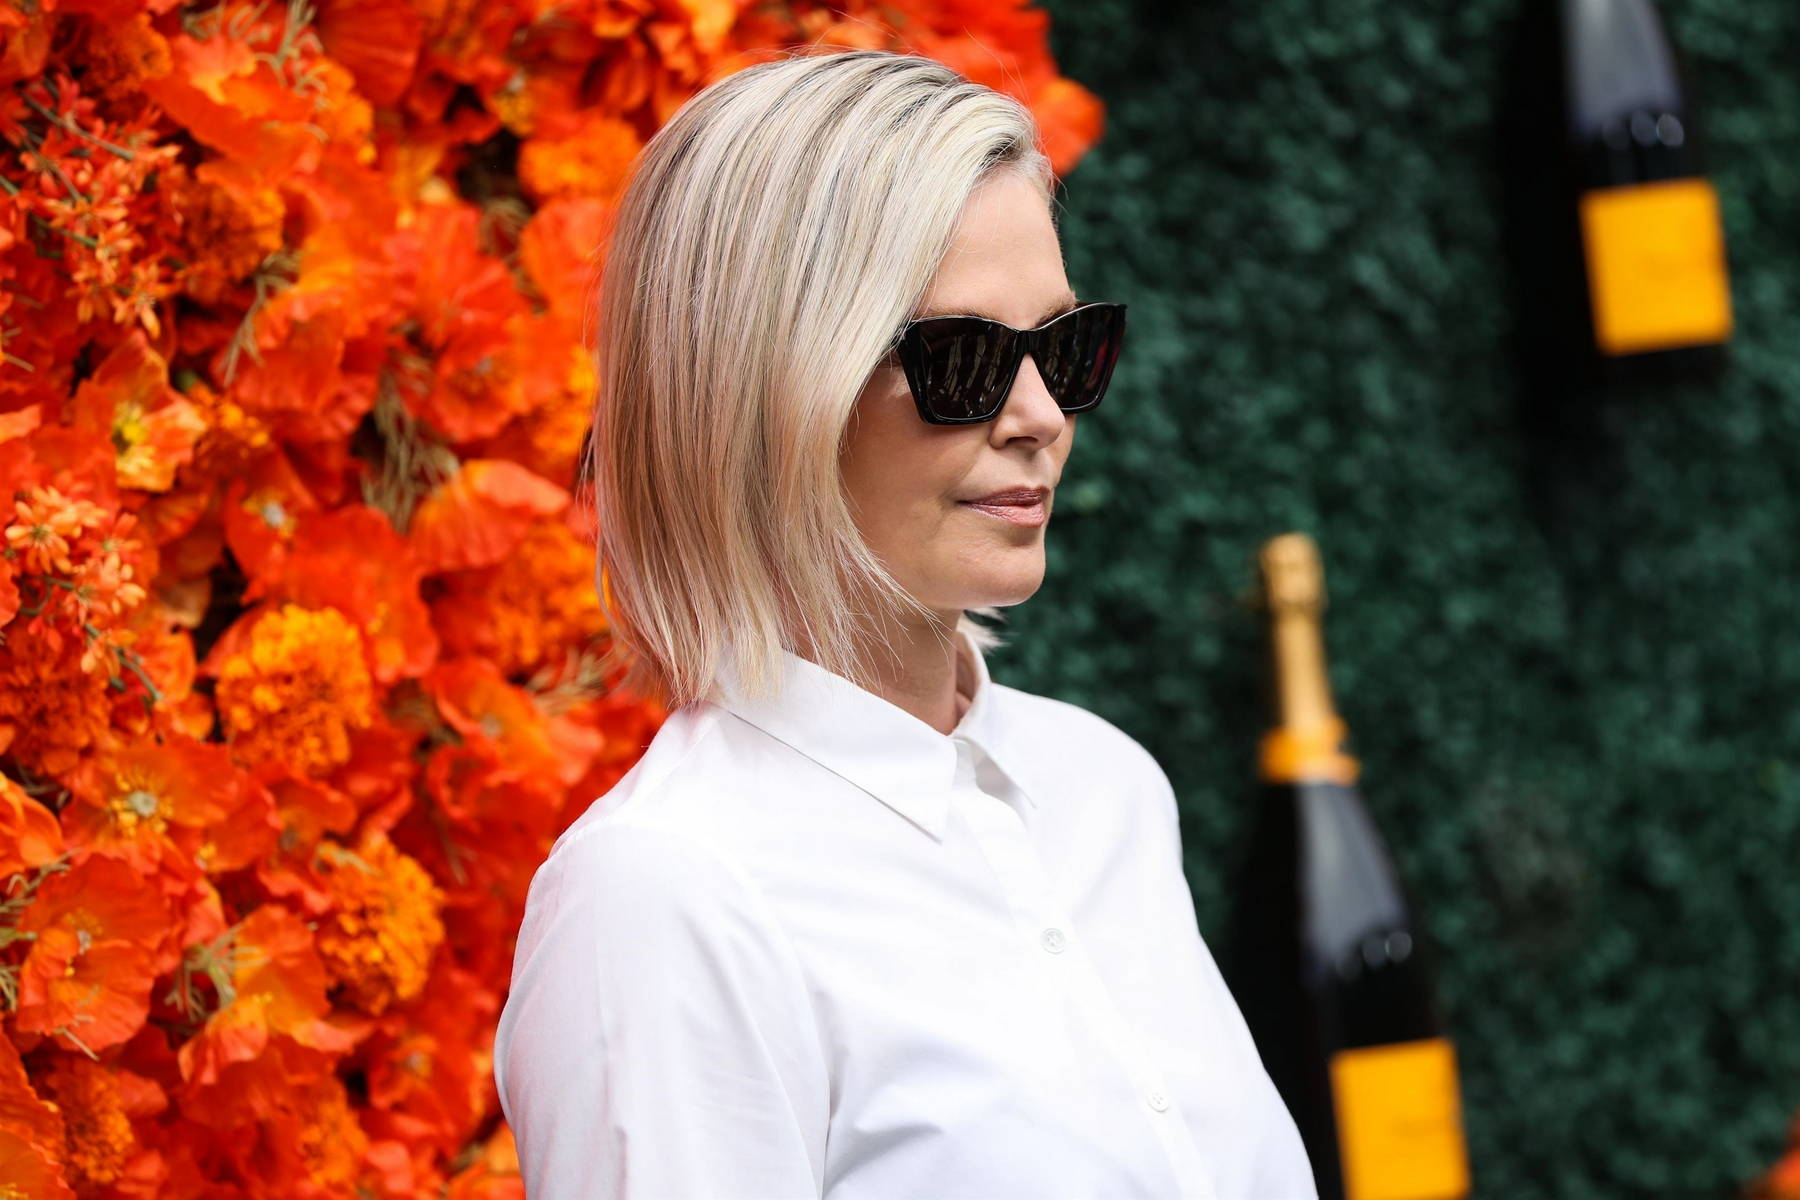 charlize theron attends the veuve clicquot polo classic at will rogers  state historic park in pacific palisades, california-021021_11